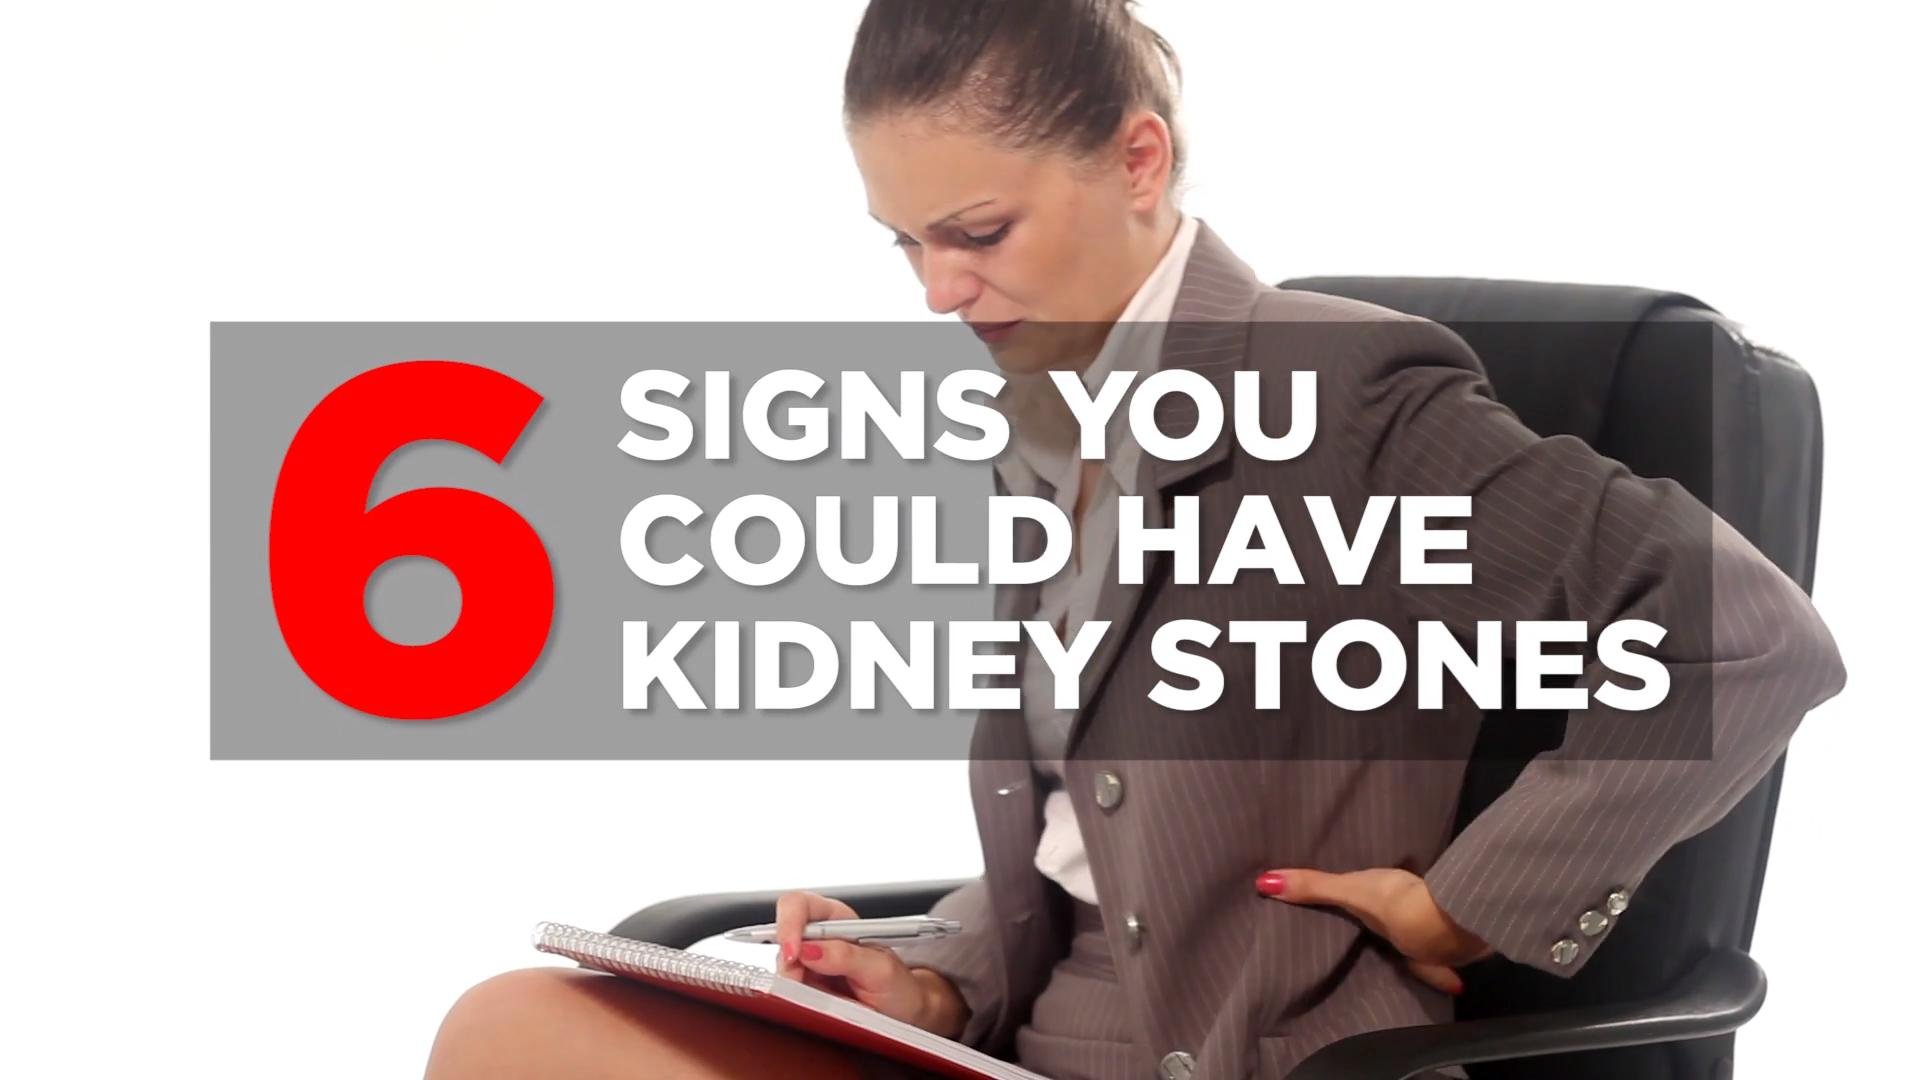 Kidney stone symptoms you should know